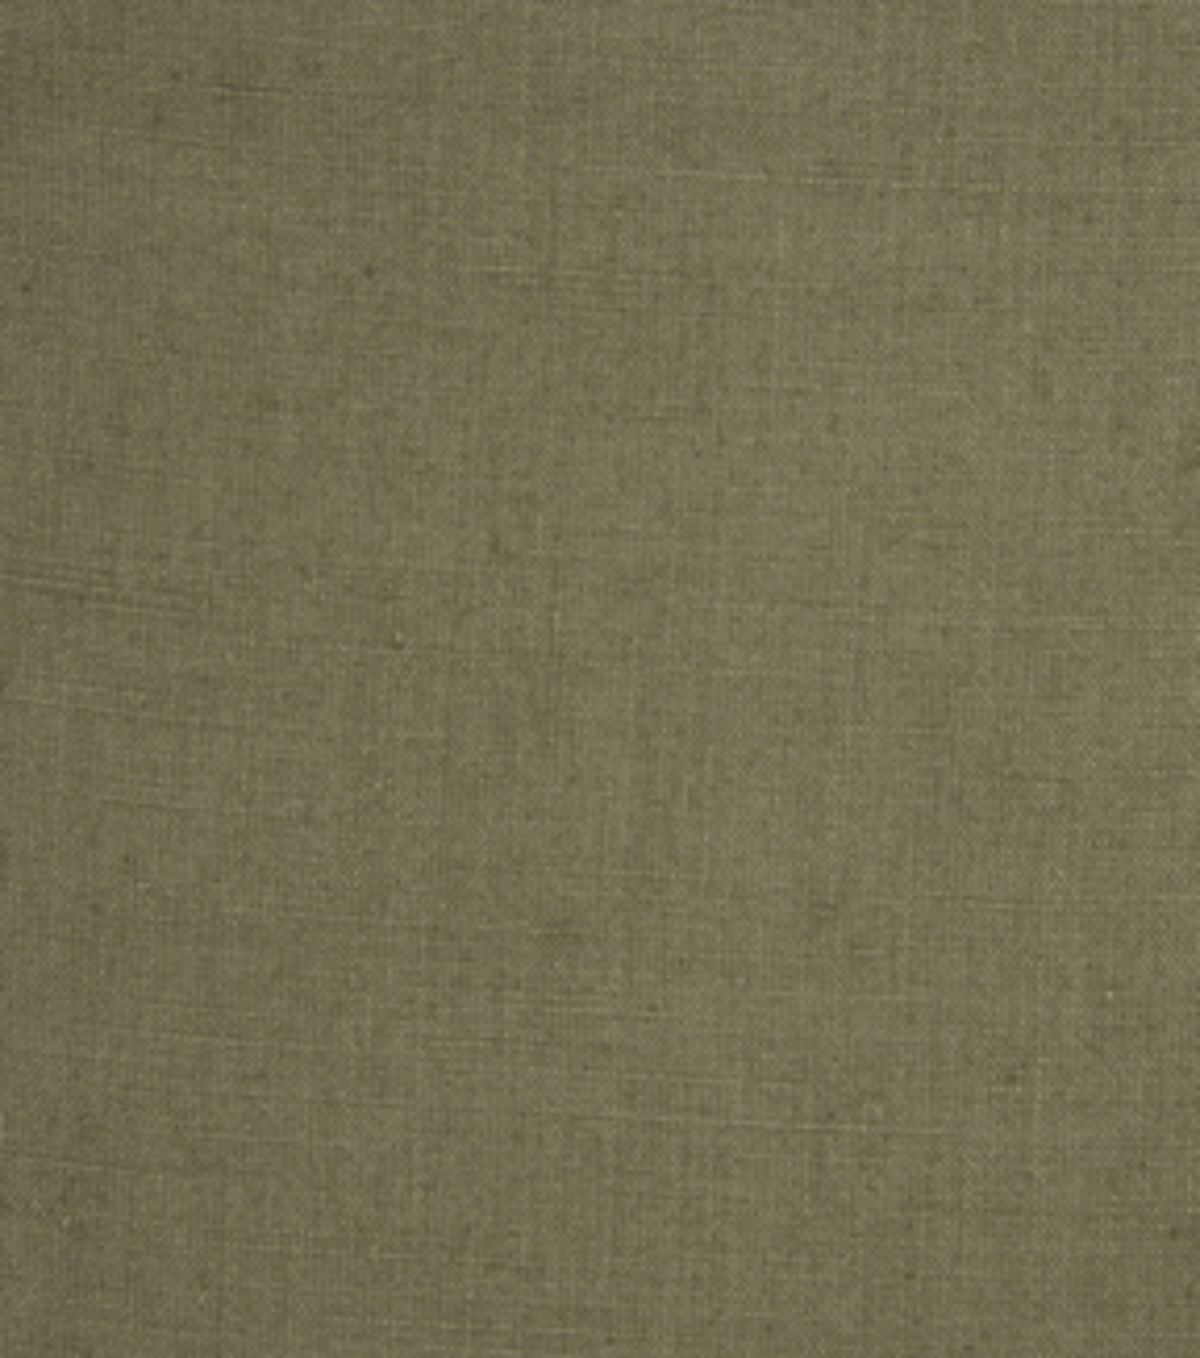 Home Decor 8\u0022x8\u0022 Fabric Swatch-Signature Series Sigourney Cyprus